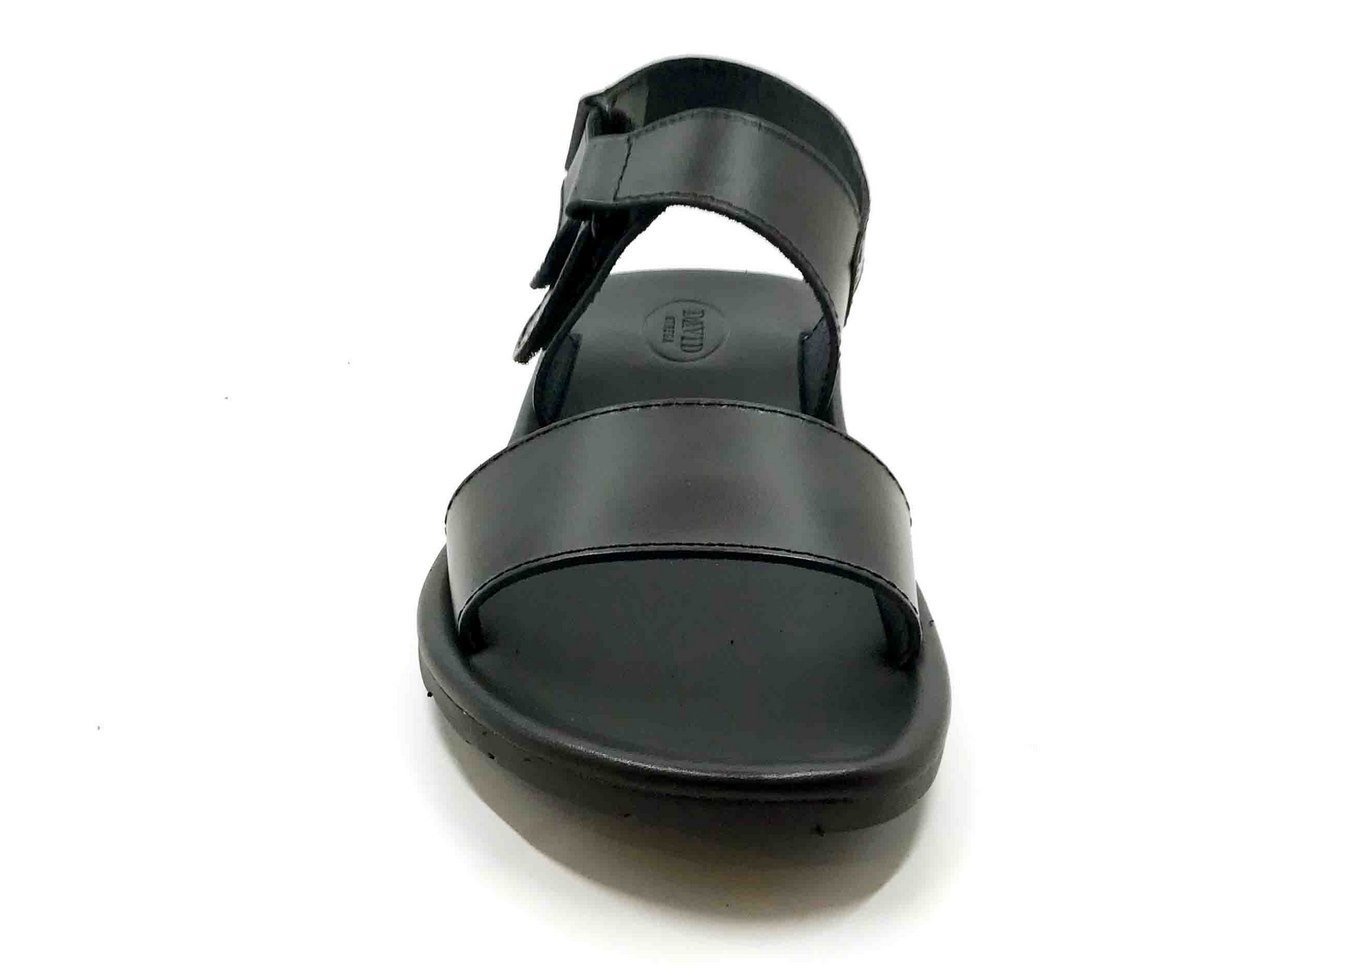 Padded sole Sandals in Black cowhide leather